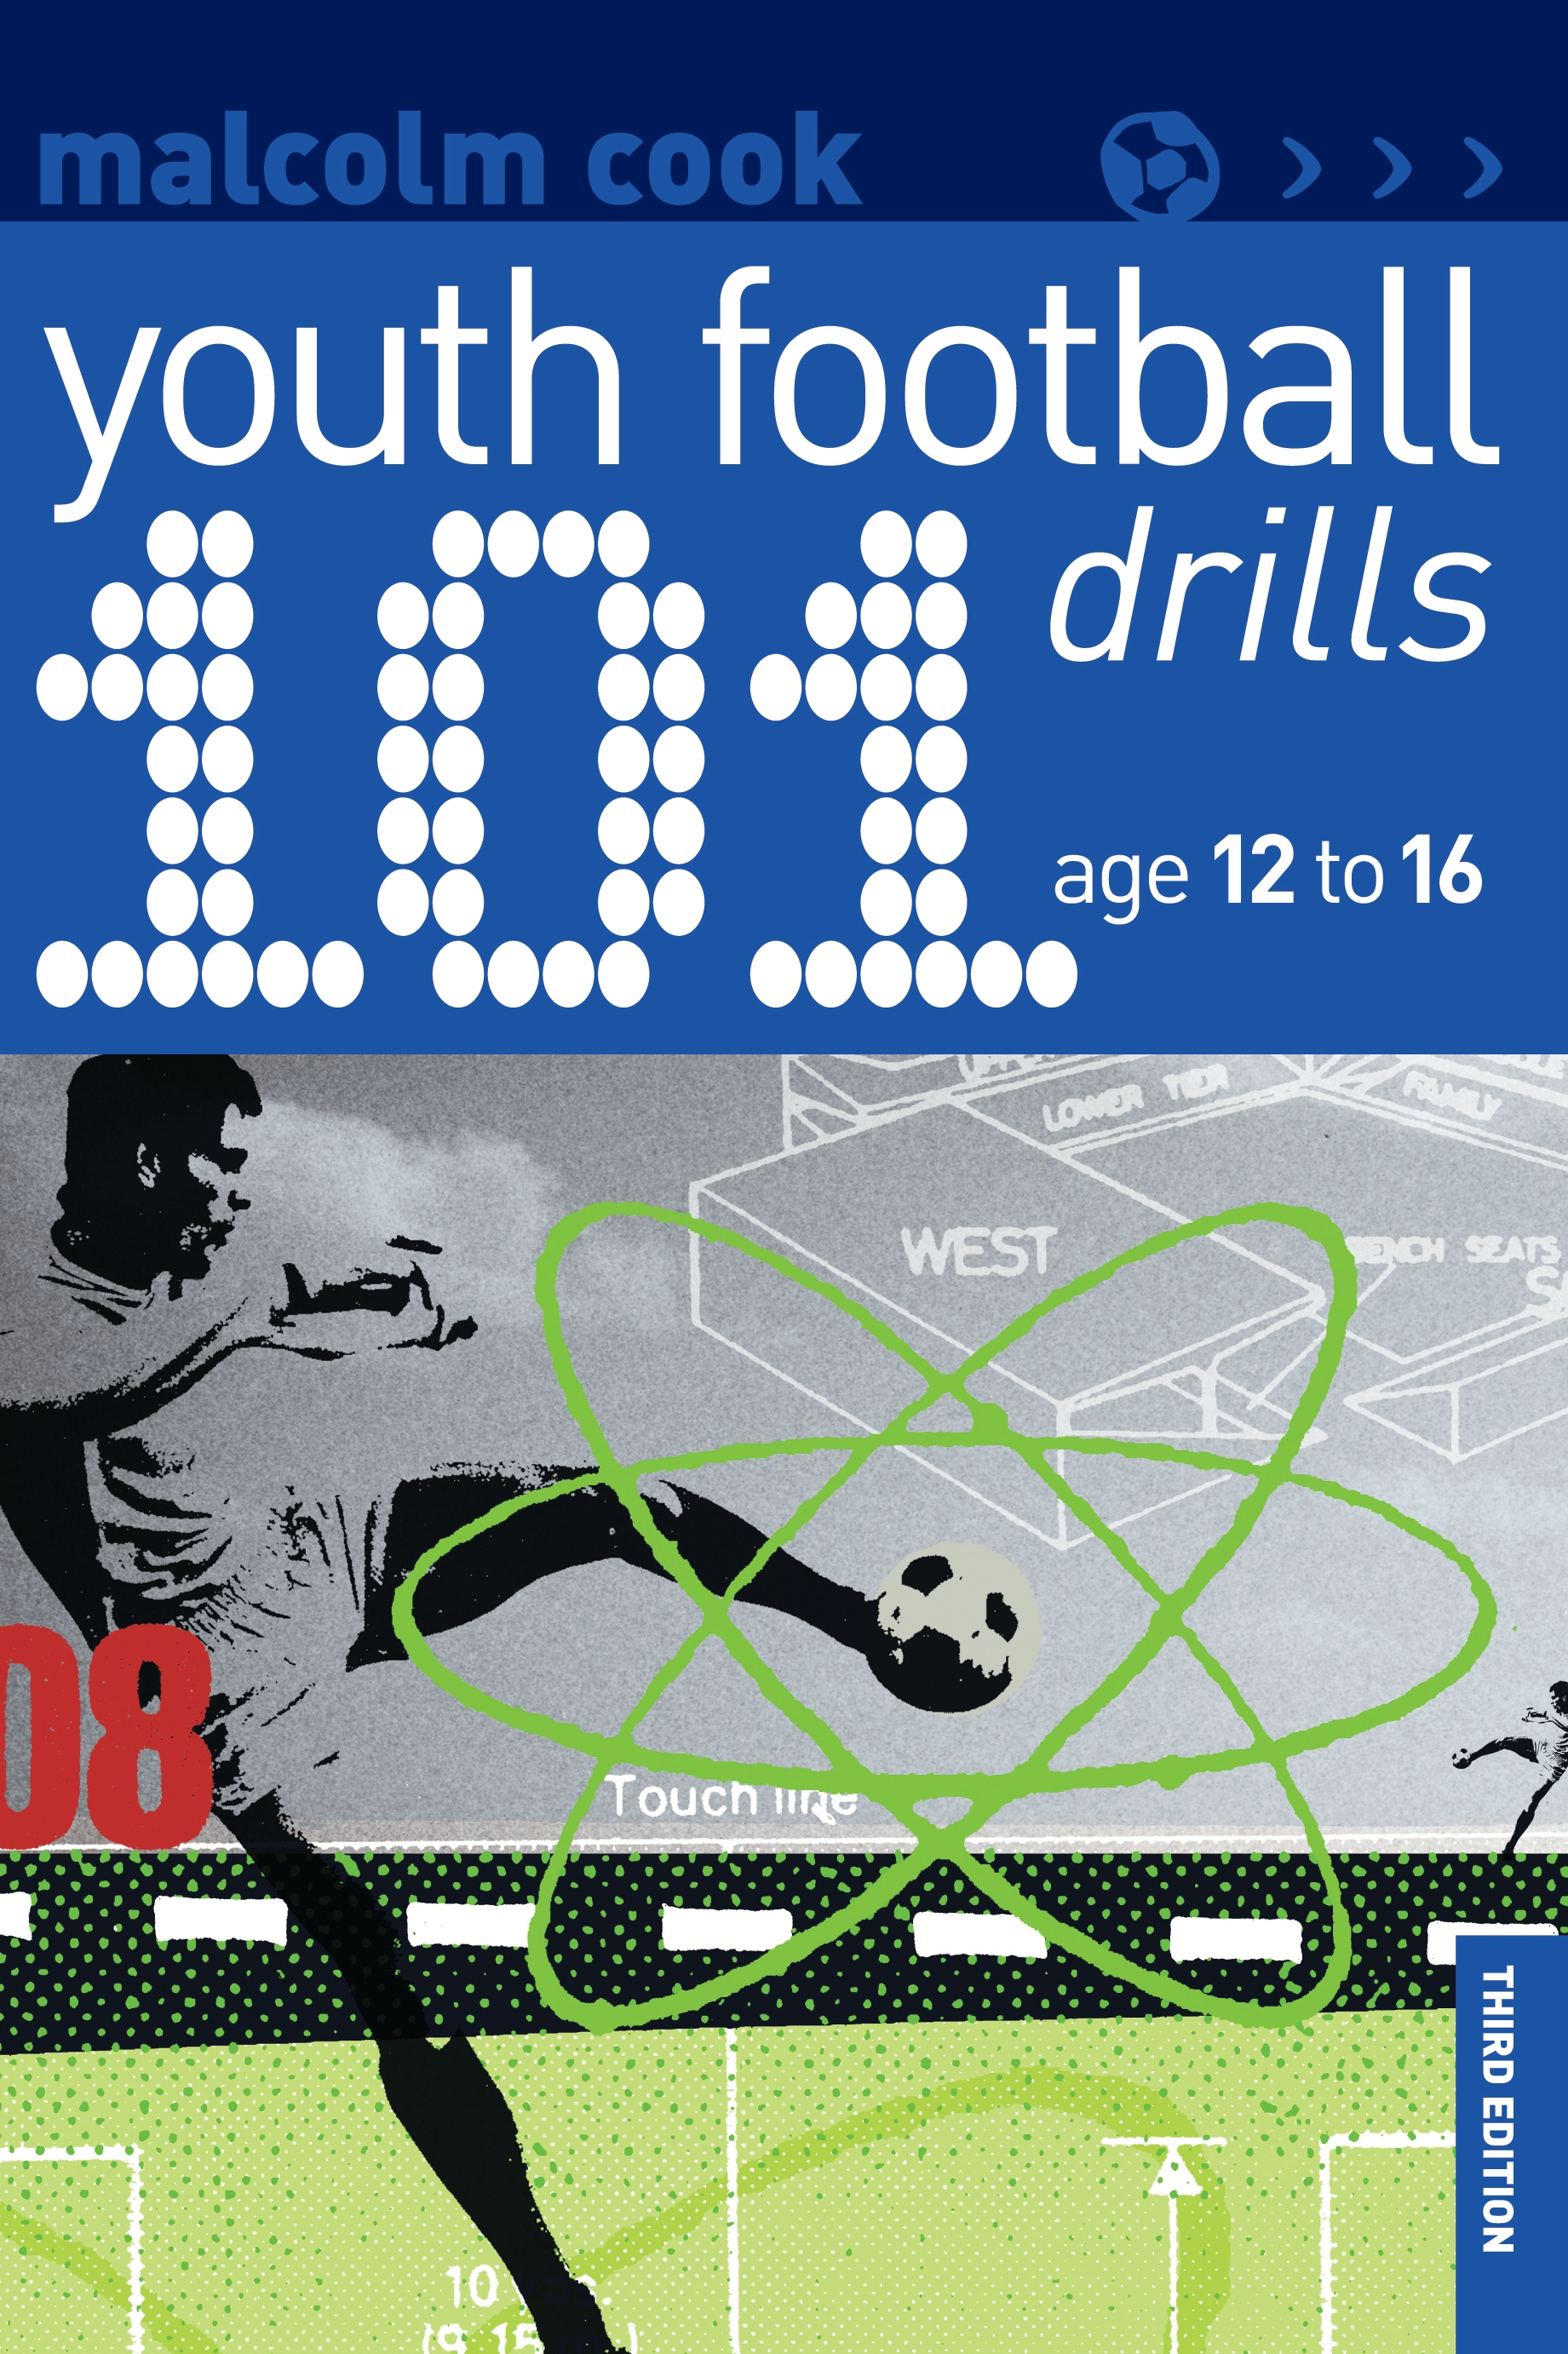 101 Youth Football Drills Age 12 to 16